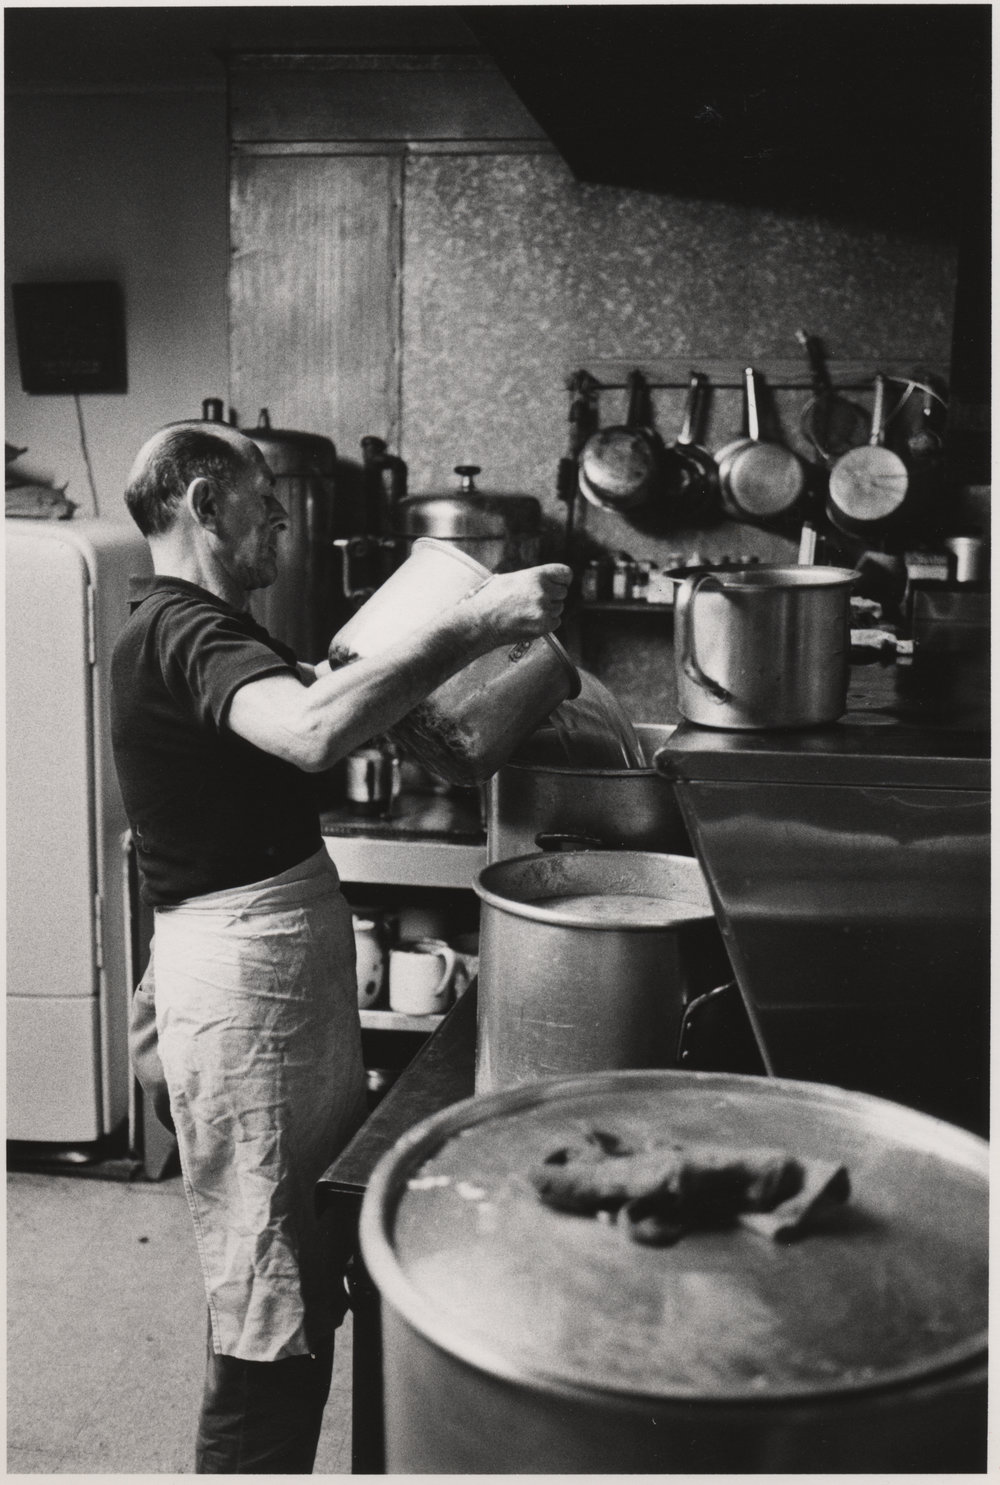 HOUSE OF HOSPITALITY man making soup.jpg